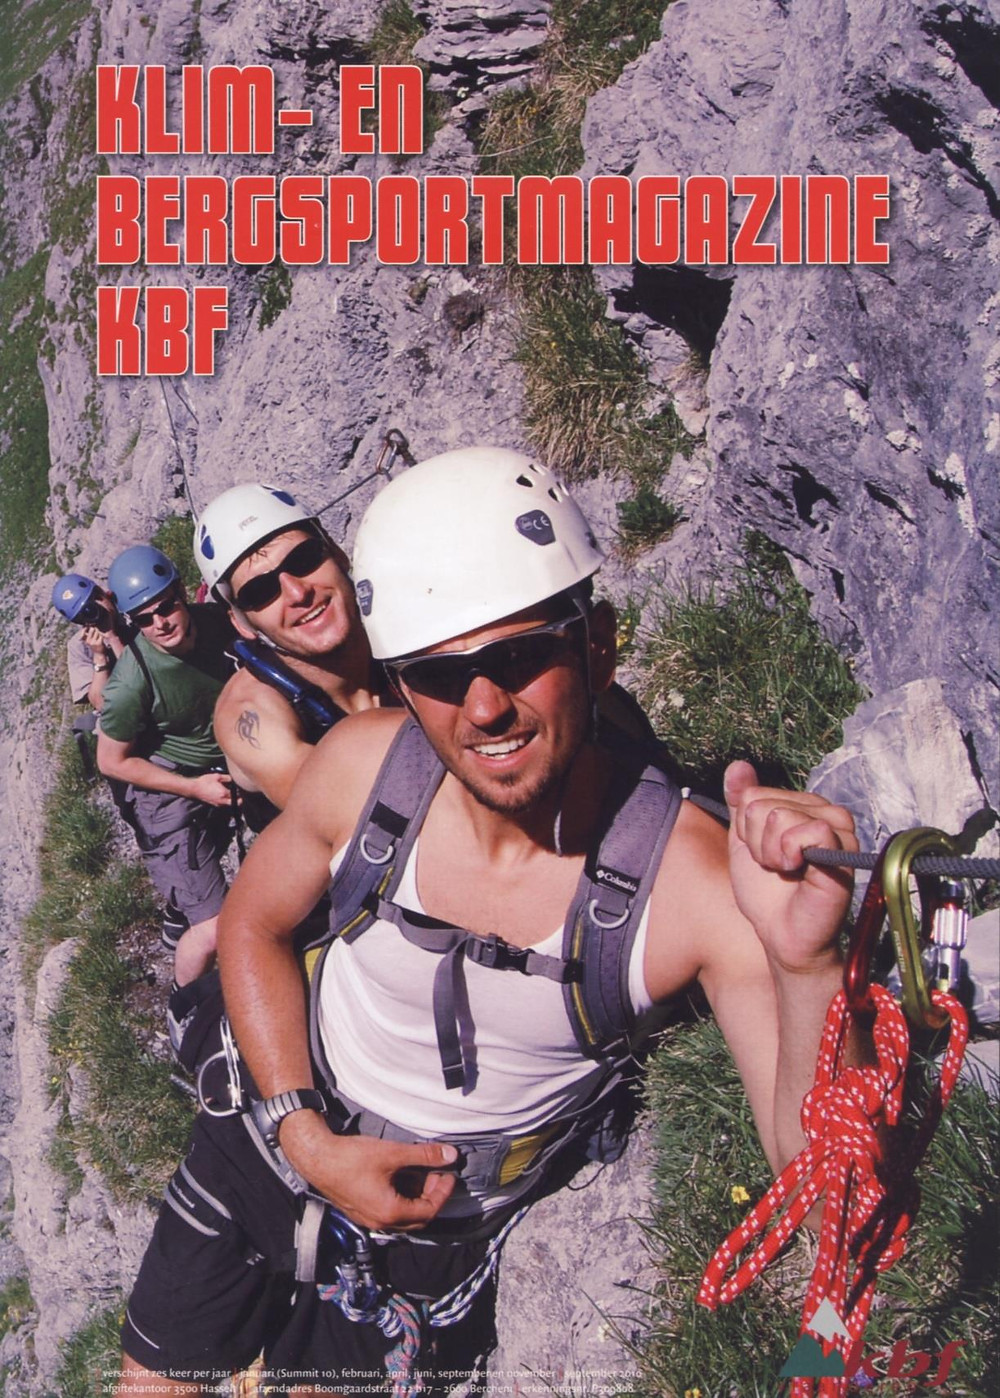 One of my first cover-images featuring my cousin Dominique Soete and one of my best friends Benjamin Vanhaverbeke - Cover in the Belgian mountaineering magazine KBF